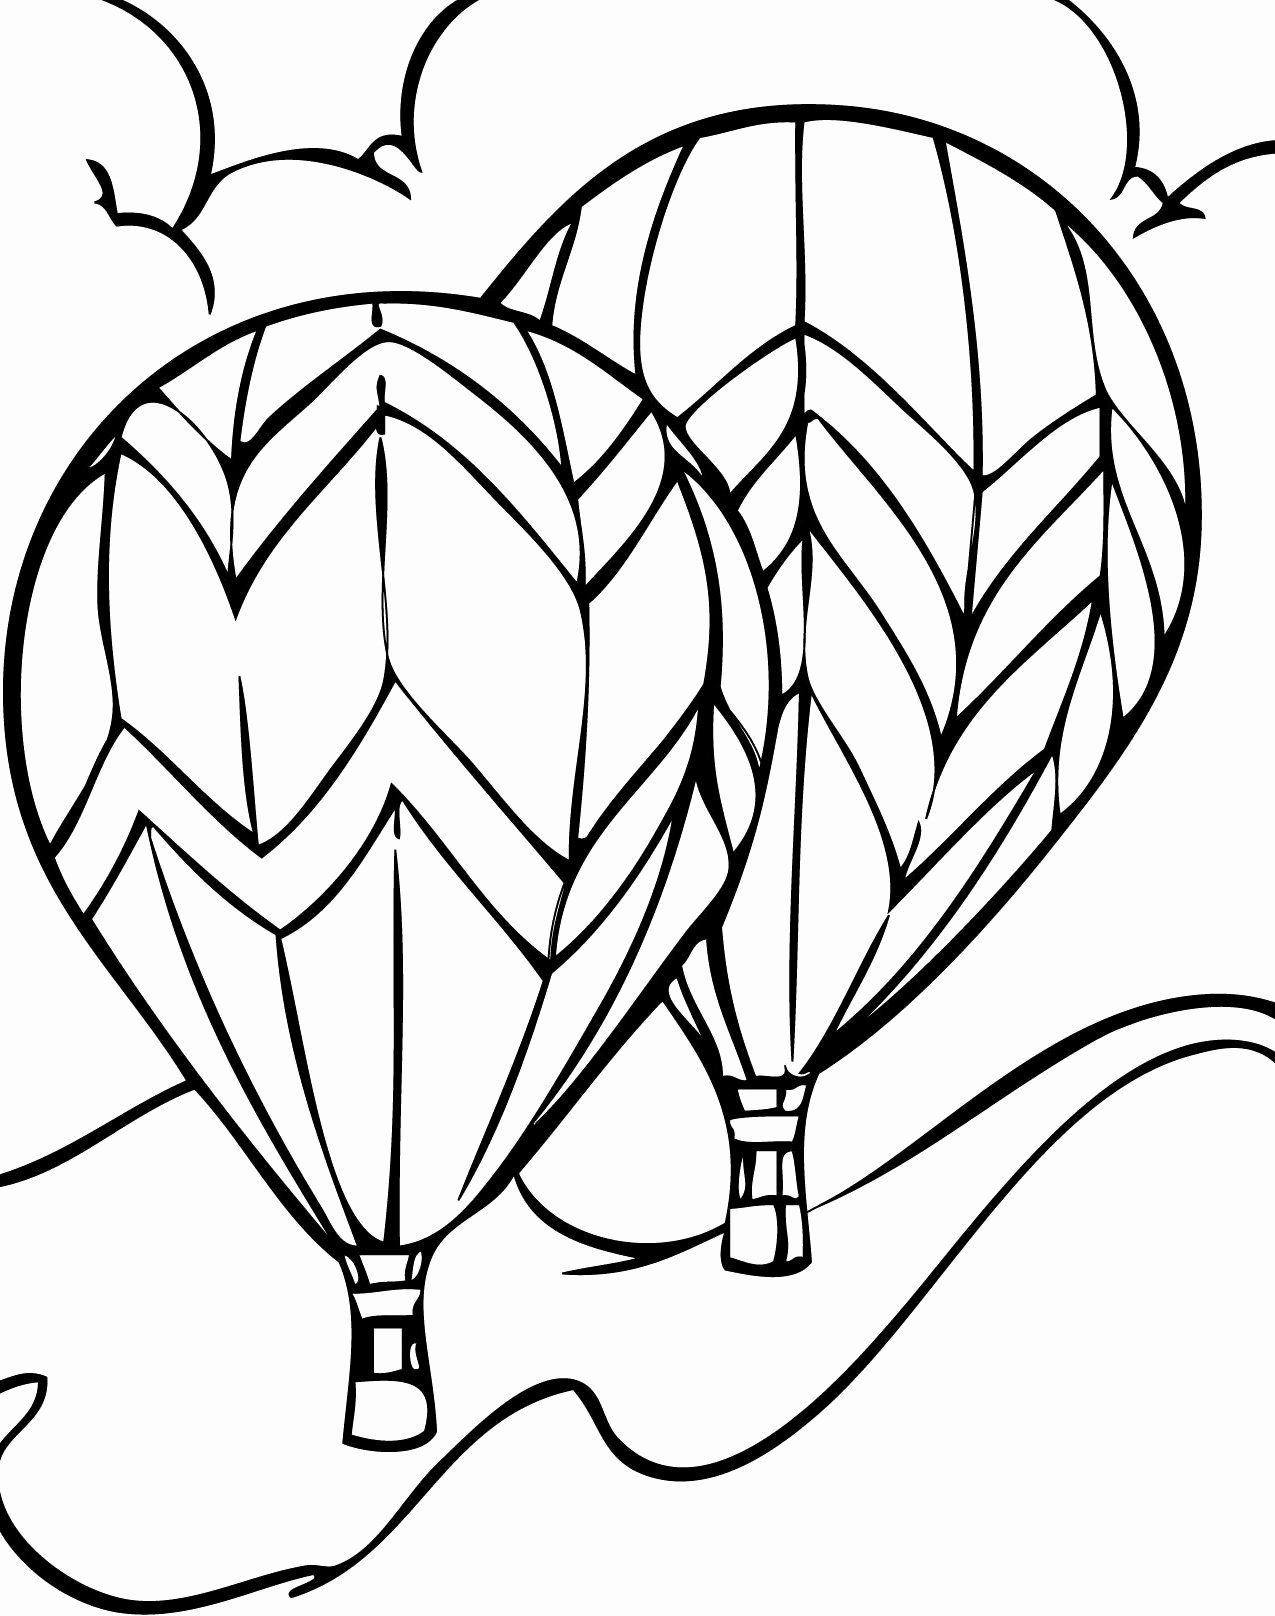 Coloring Book For Seniors Lovely Easy Coloring Pages For Seniors Easy Coloring Pages Toddler Coloring Book Printable Coloring Book